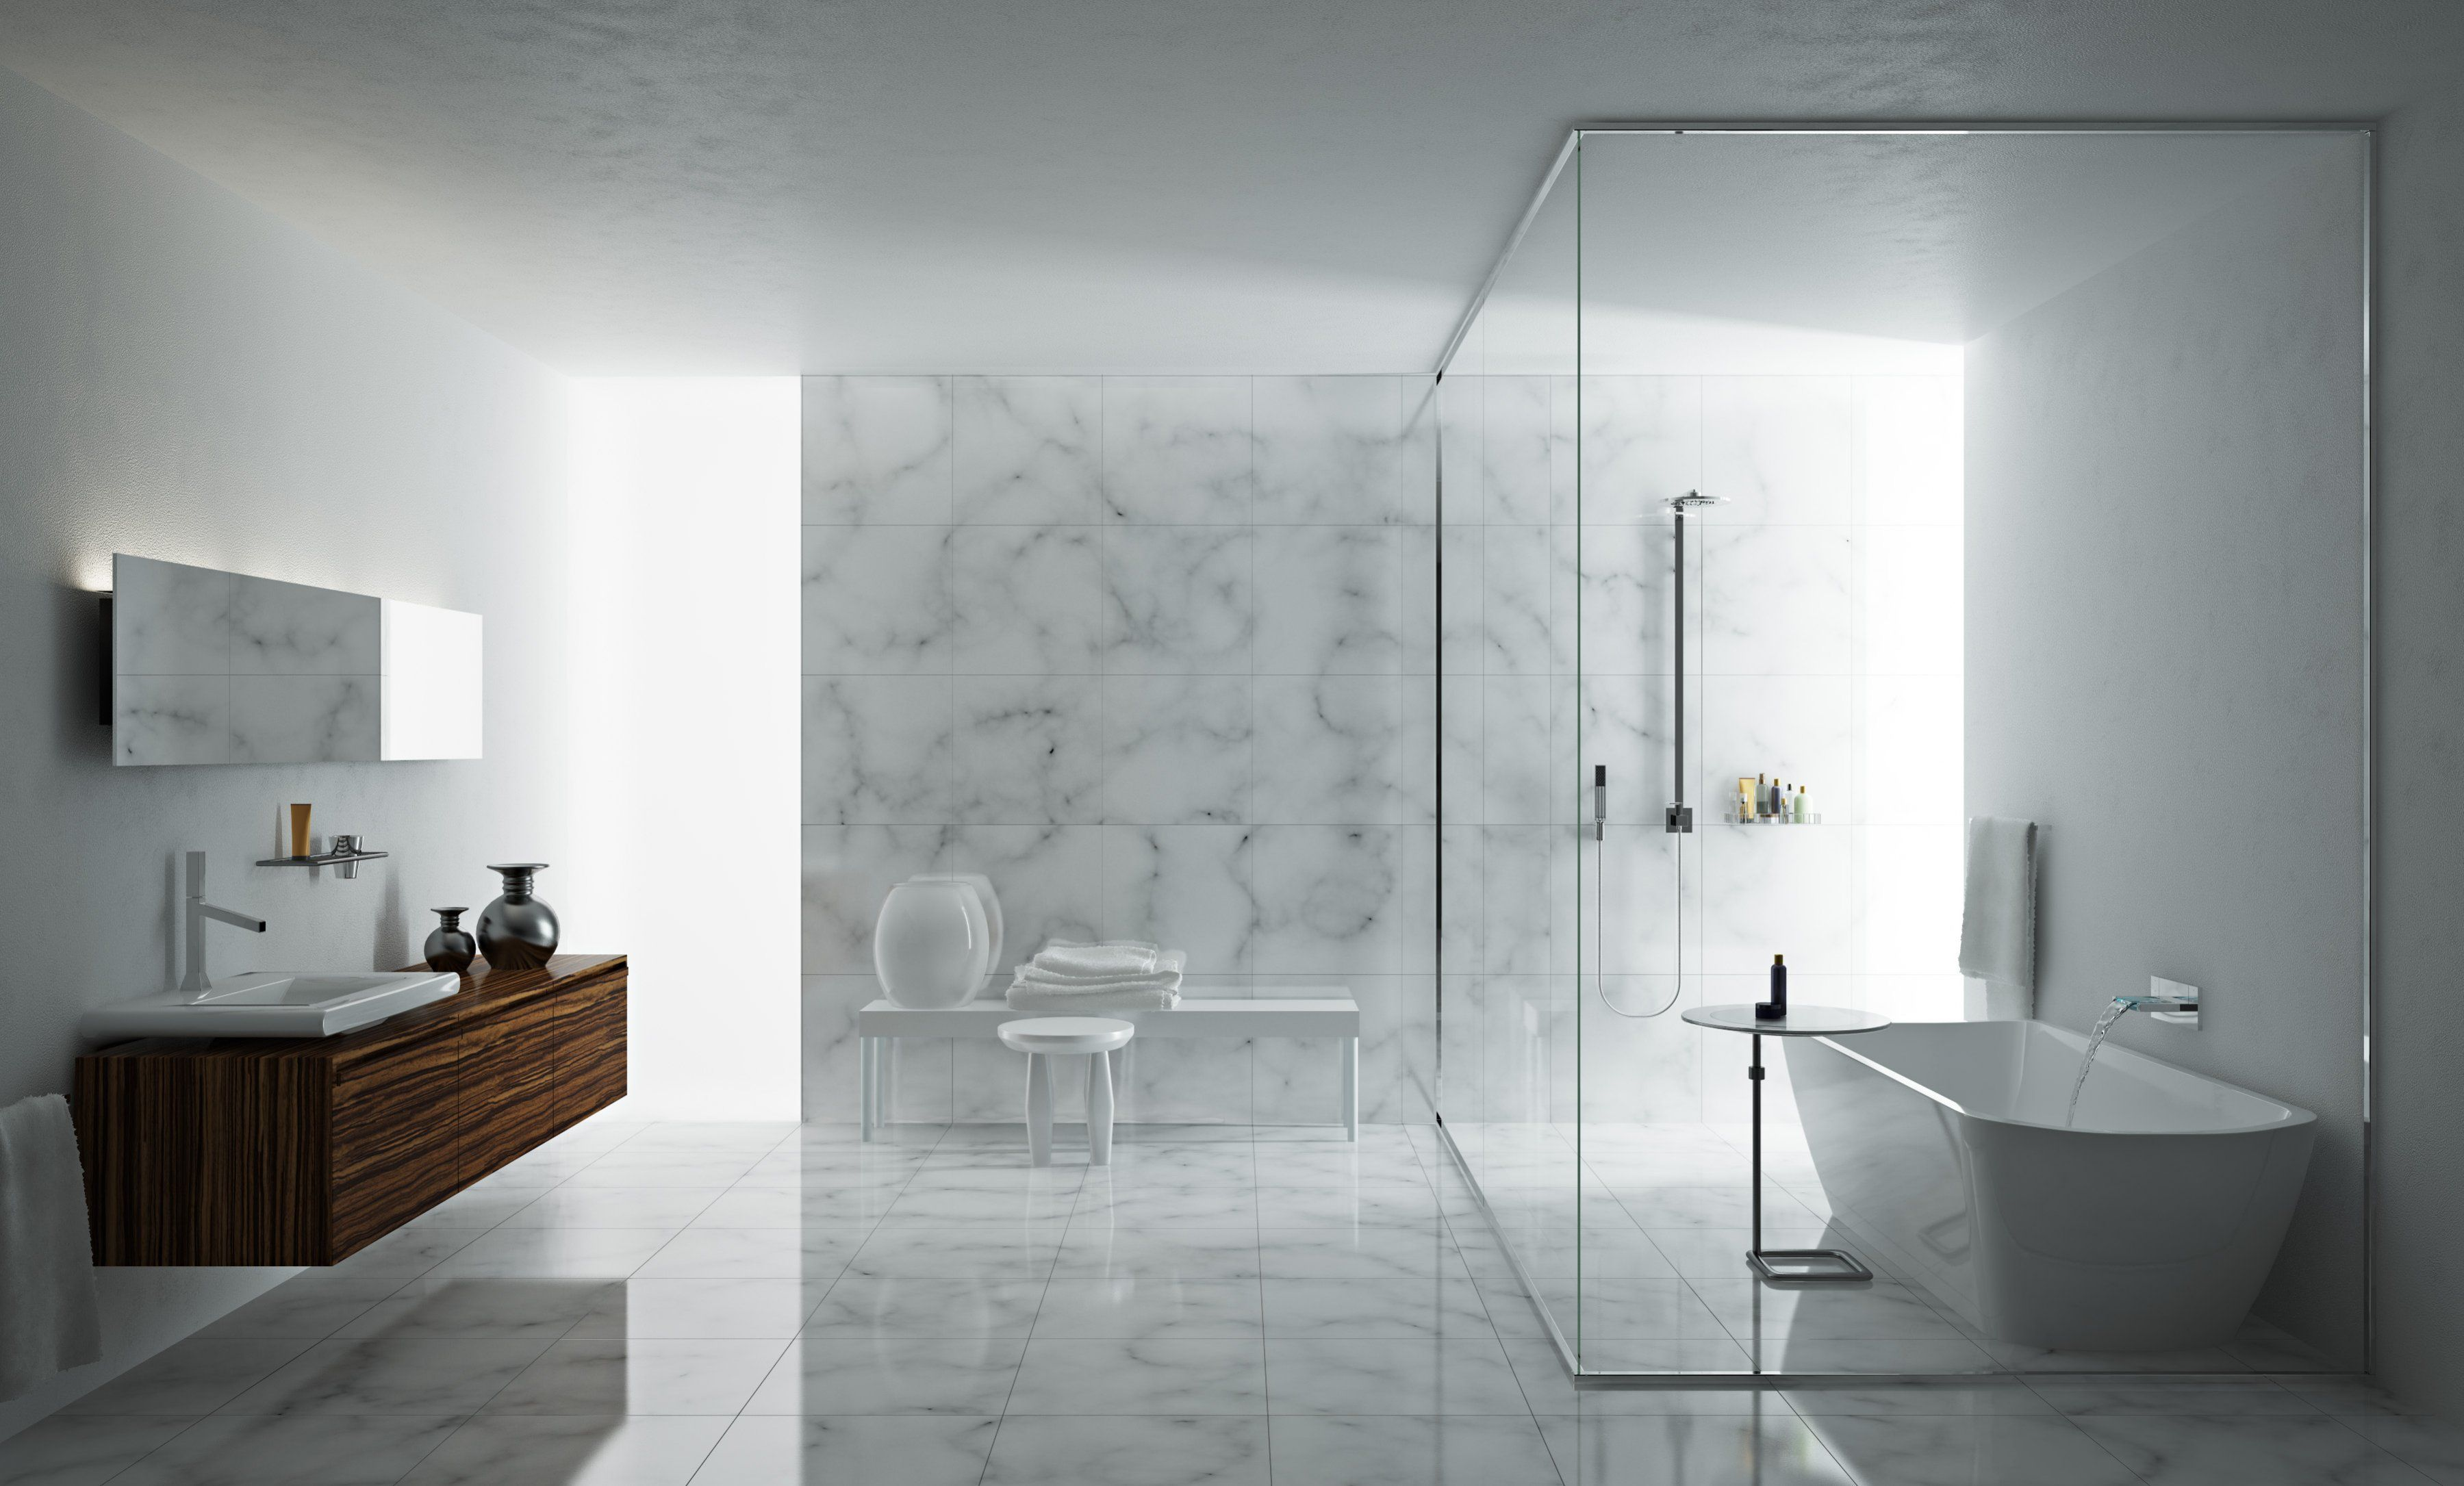 Boston Bathroom Remodeling Minimalist 19 glamorous marble interior designs that will delight you